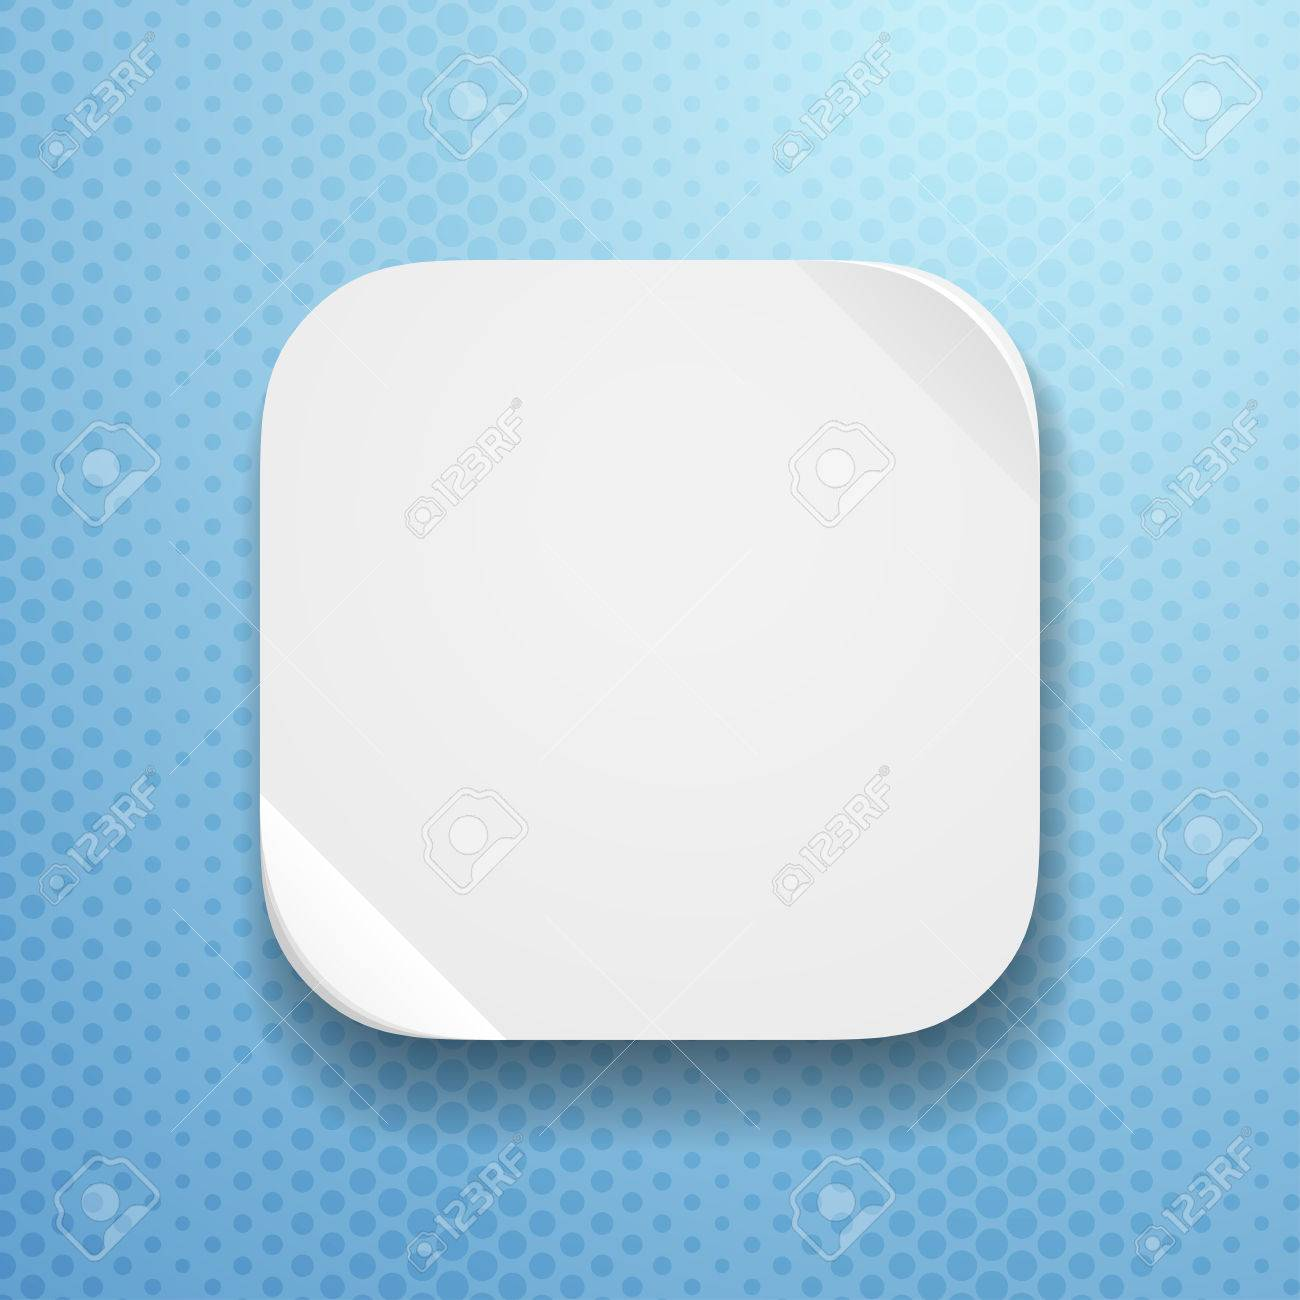 Blank App Icon Template With Flatted Paper Texture Royalty Free ...